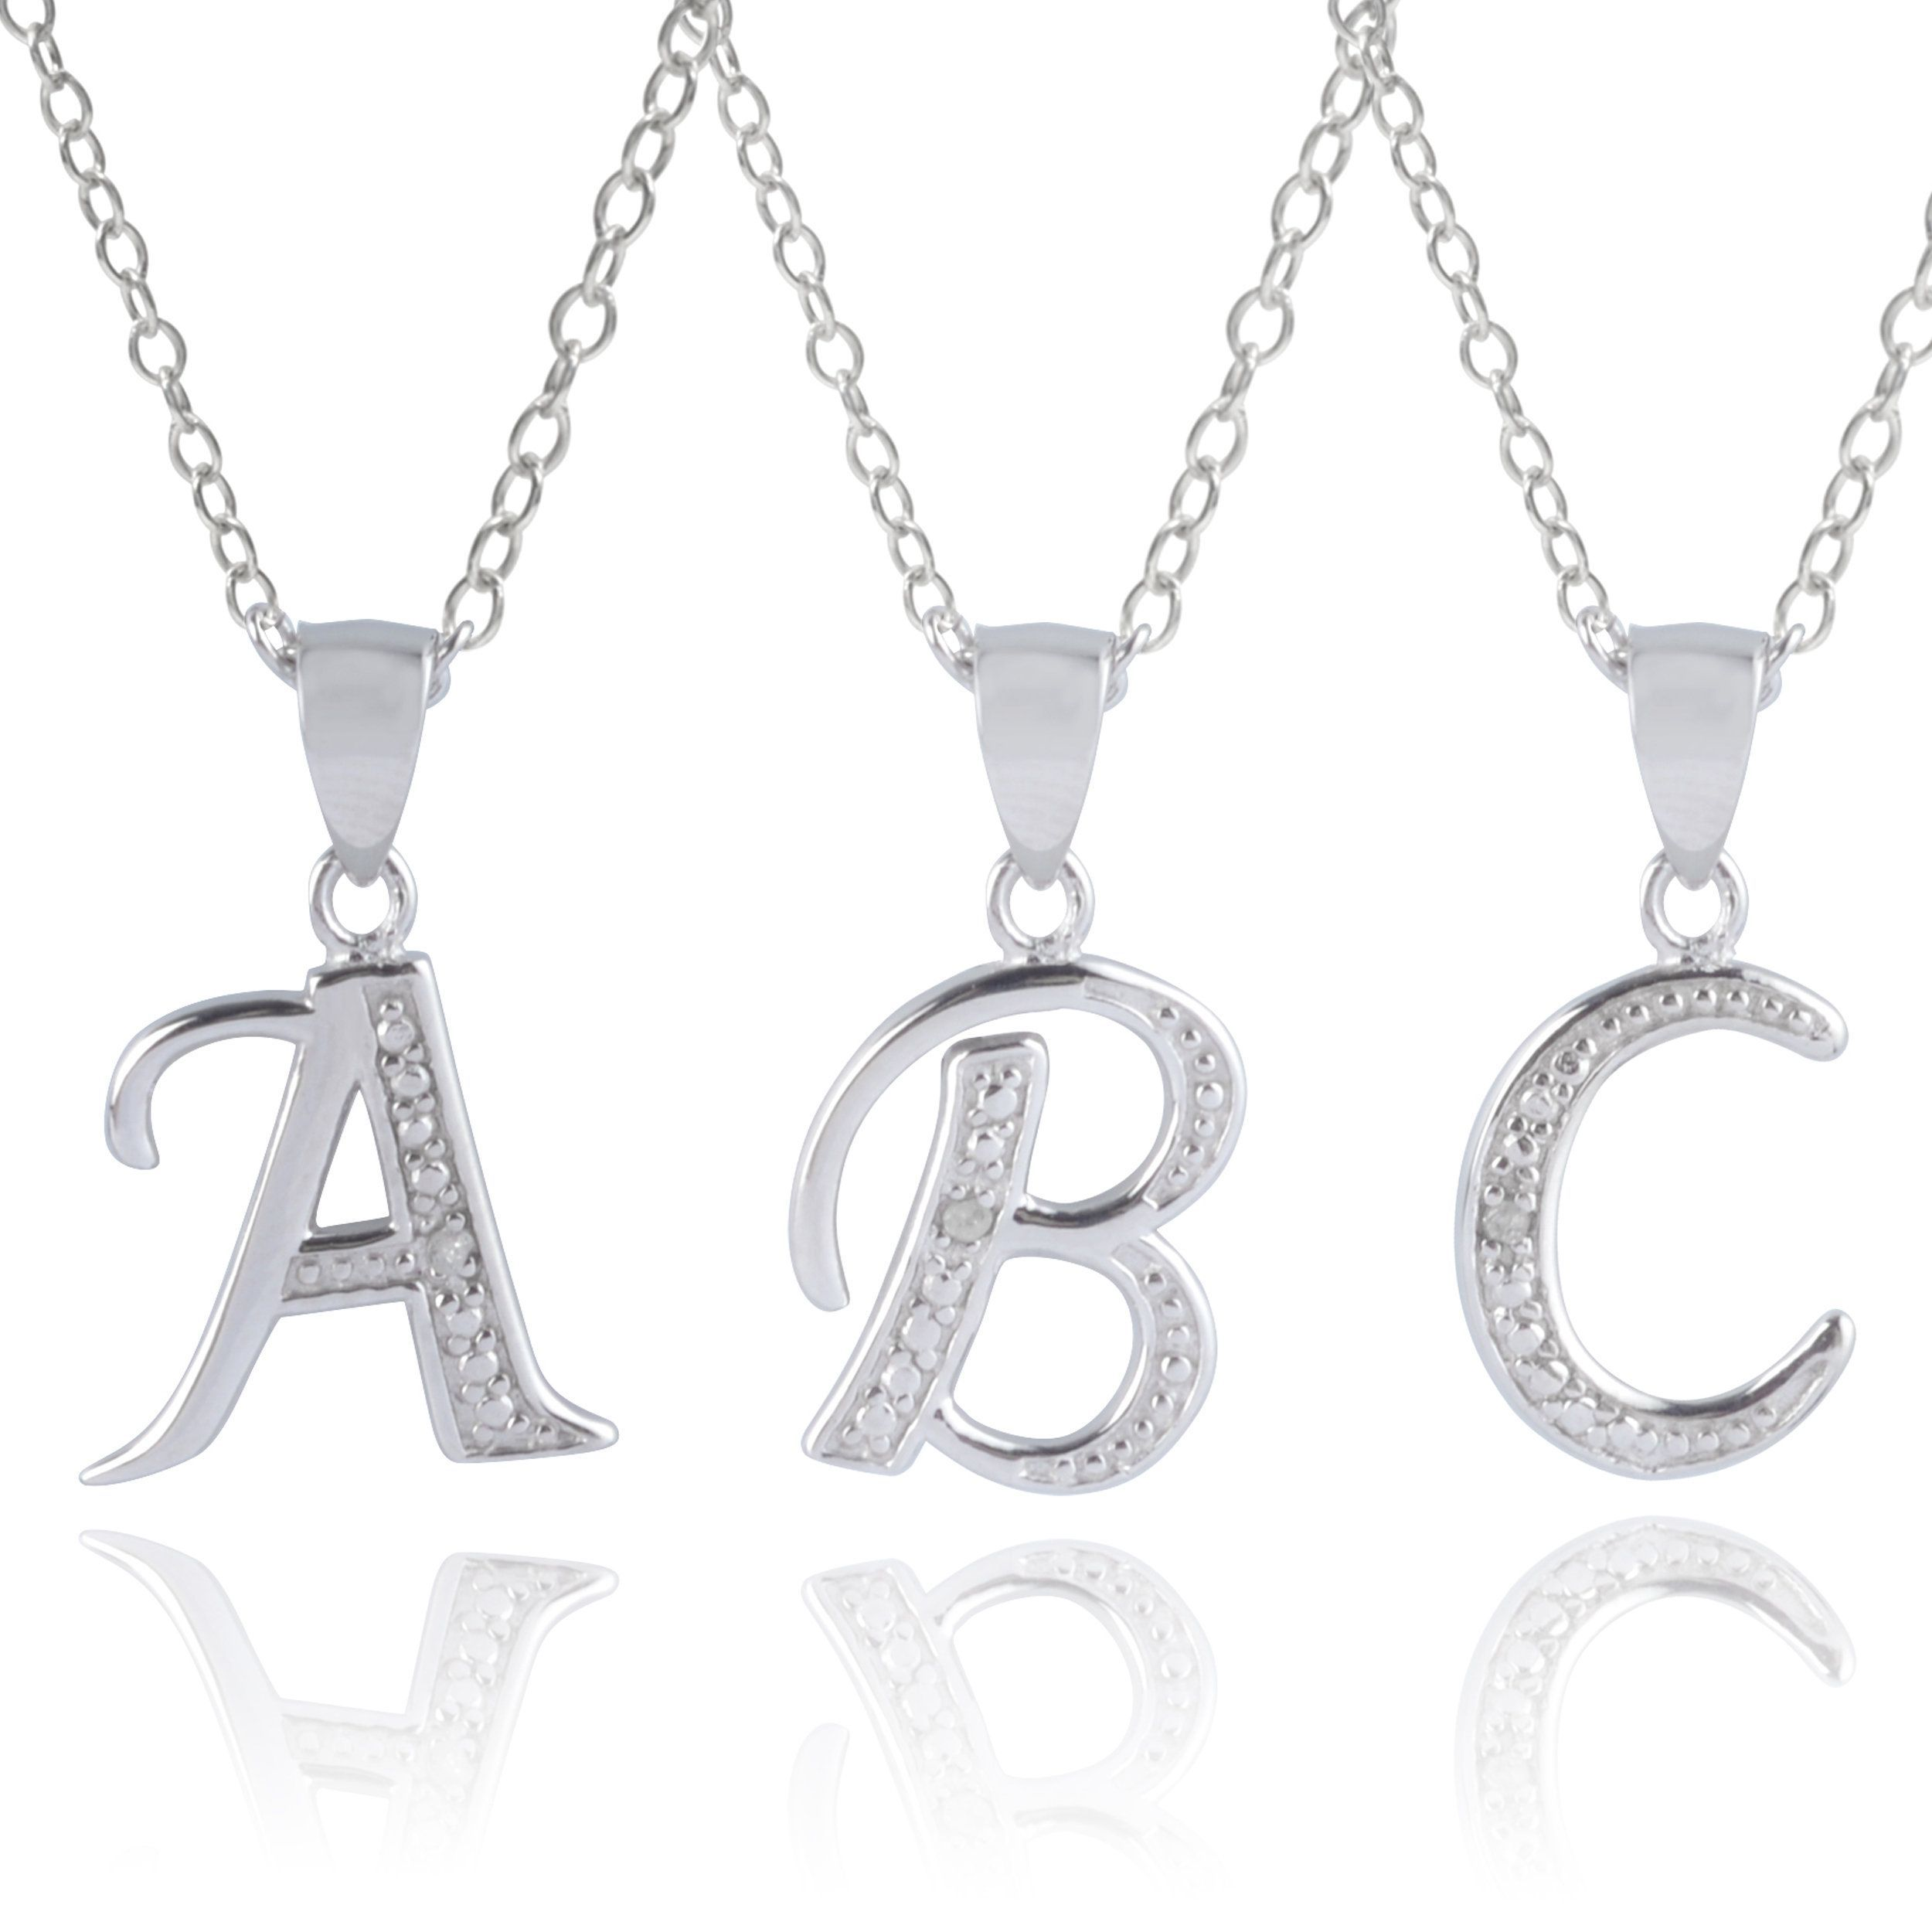 Journee collection sterling silver diamond accent letter pendants z